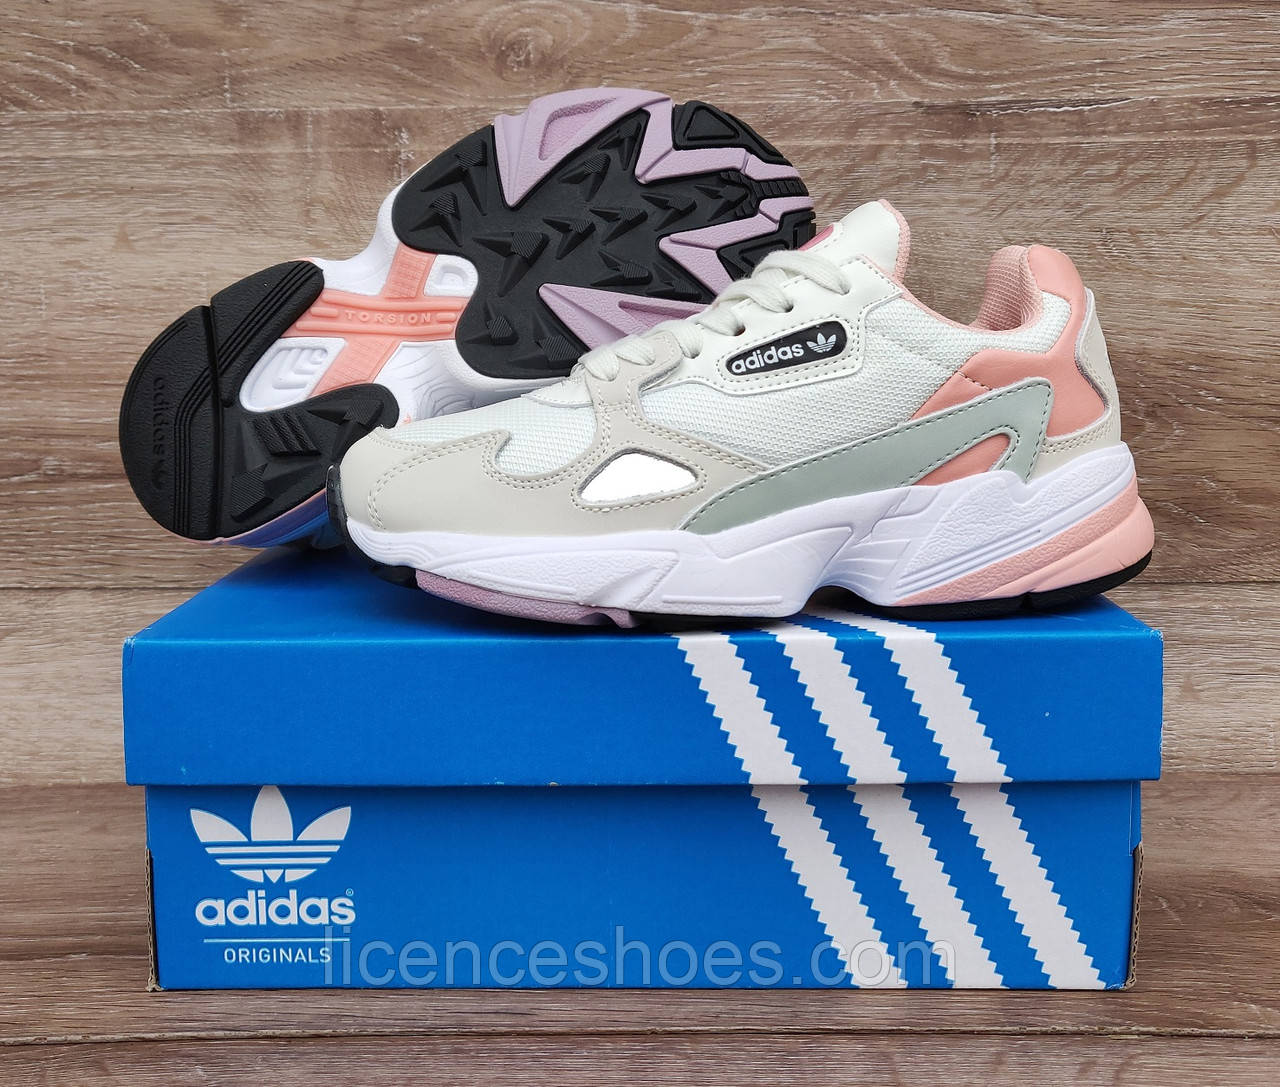 Ocho frente Complejo  ruumishuone teiniikä Iso adidas falcon white tint raw white trace pink -  ffcc-route-des-andes-camping-car.com